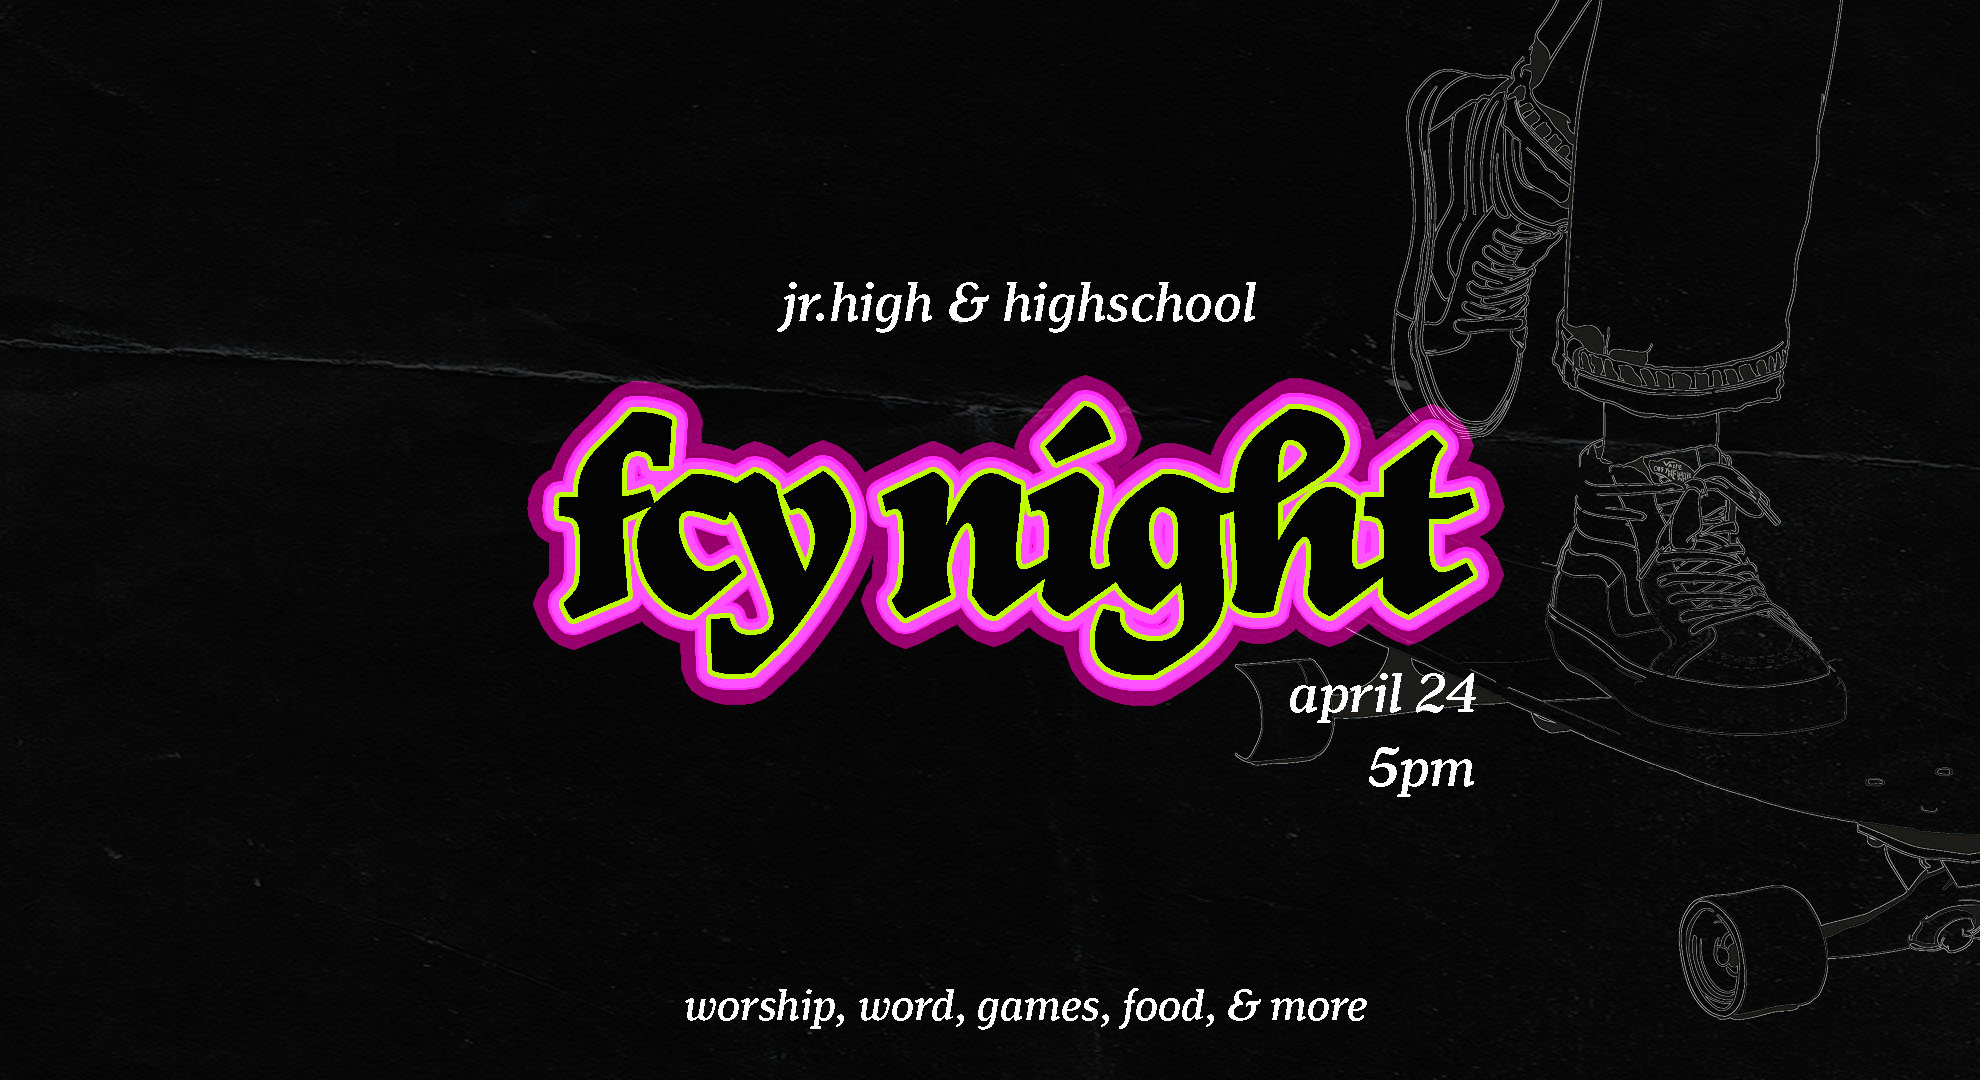 FCY Night at the Orange County campus